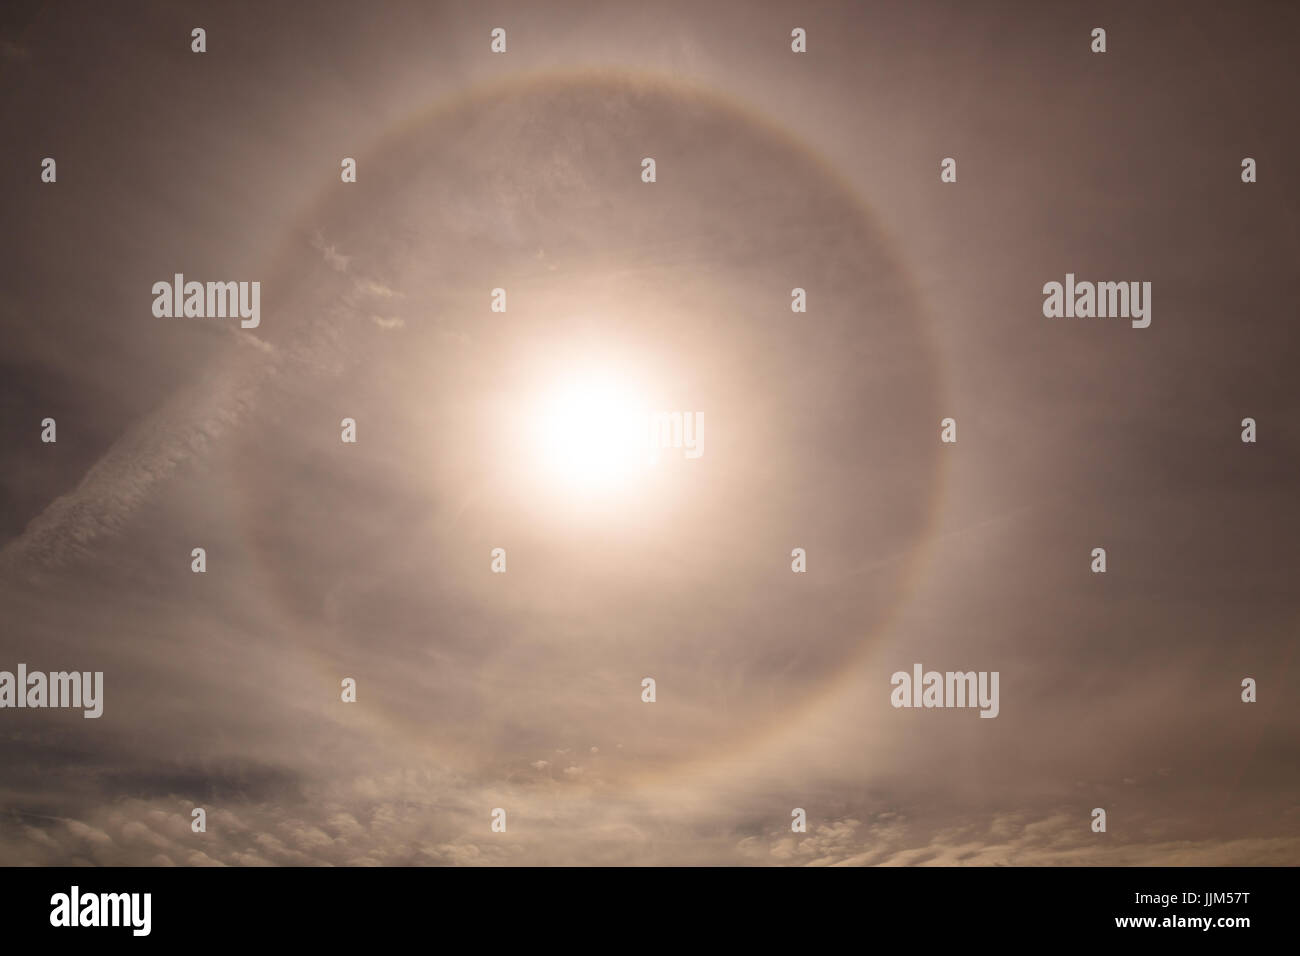 A strange refraction phenomenon around the sun with vapor trails crossing the sky. - Stock Image